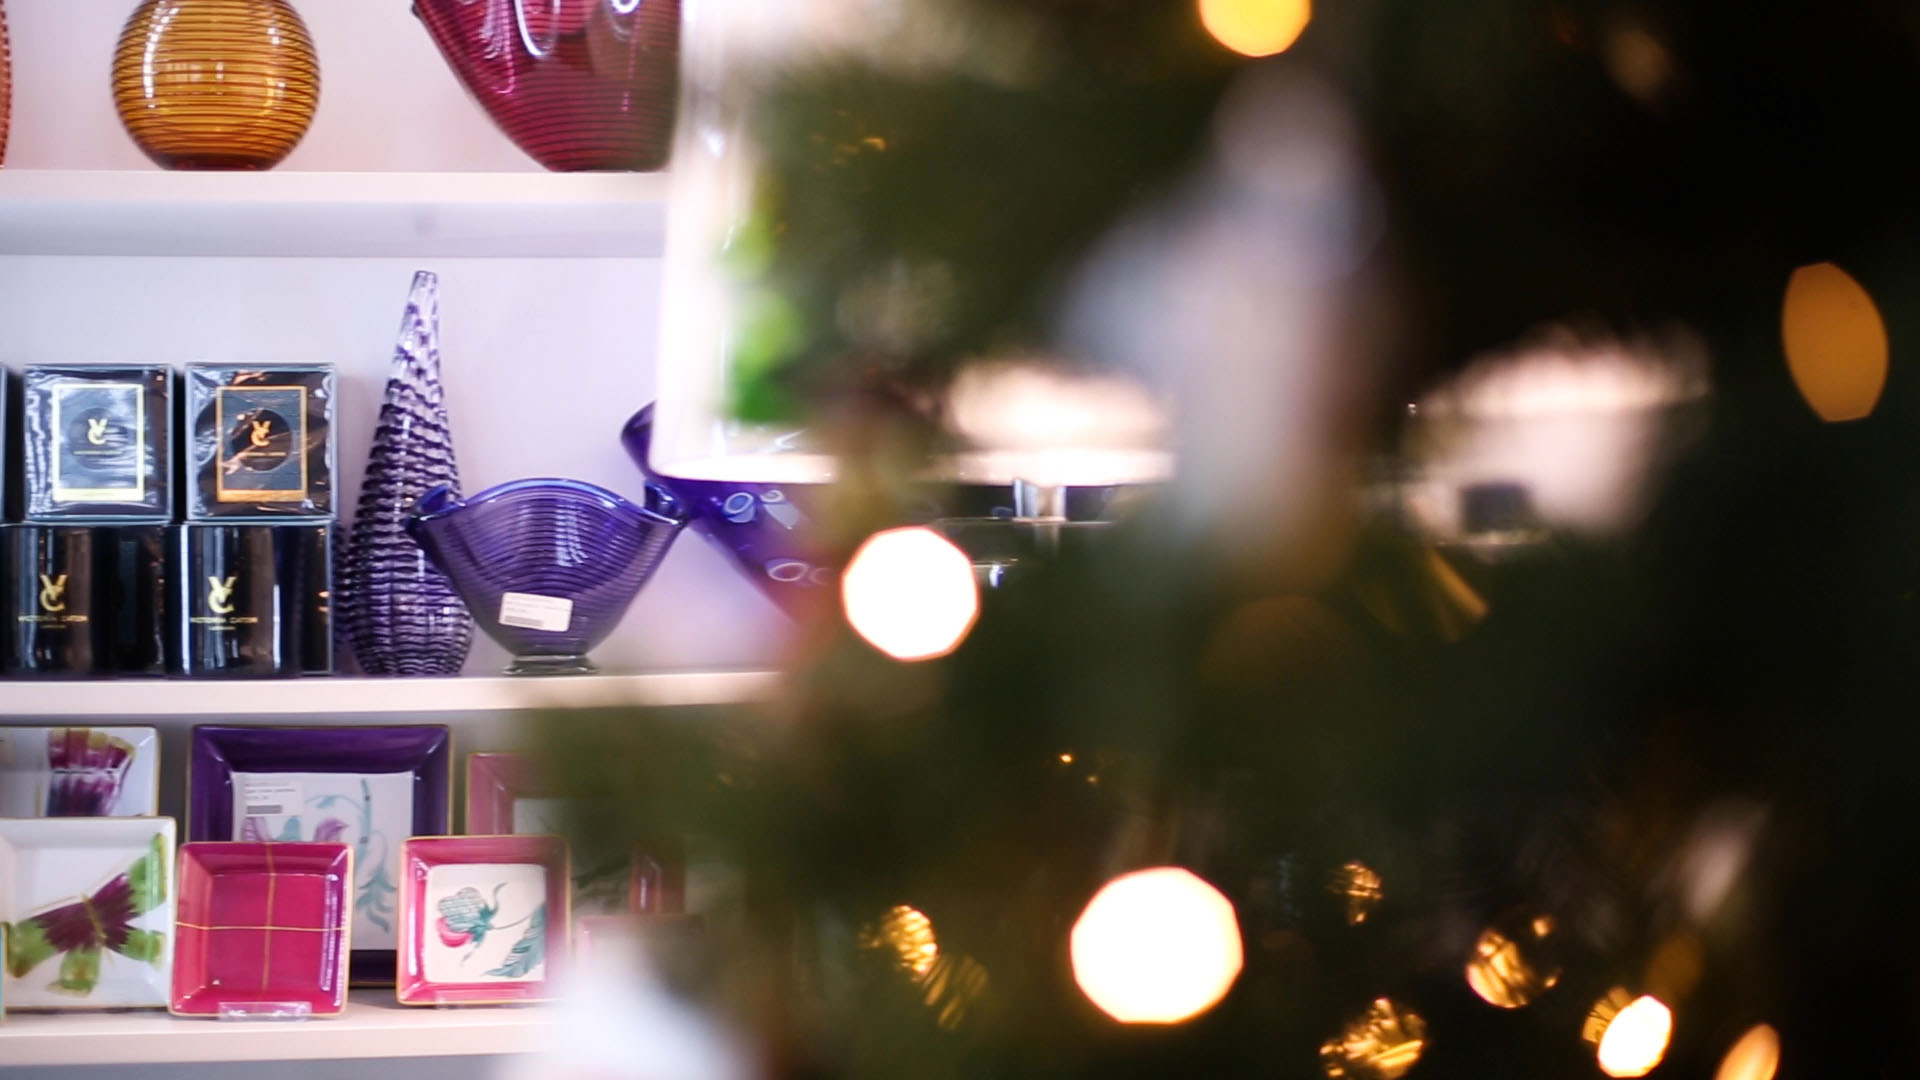 Video thumbnail. Christmas tree, lights and ornaments in a shop